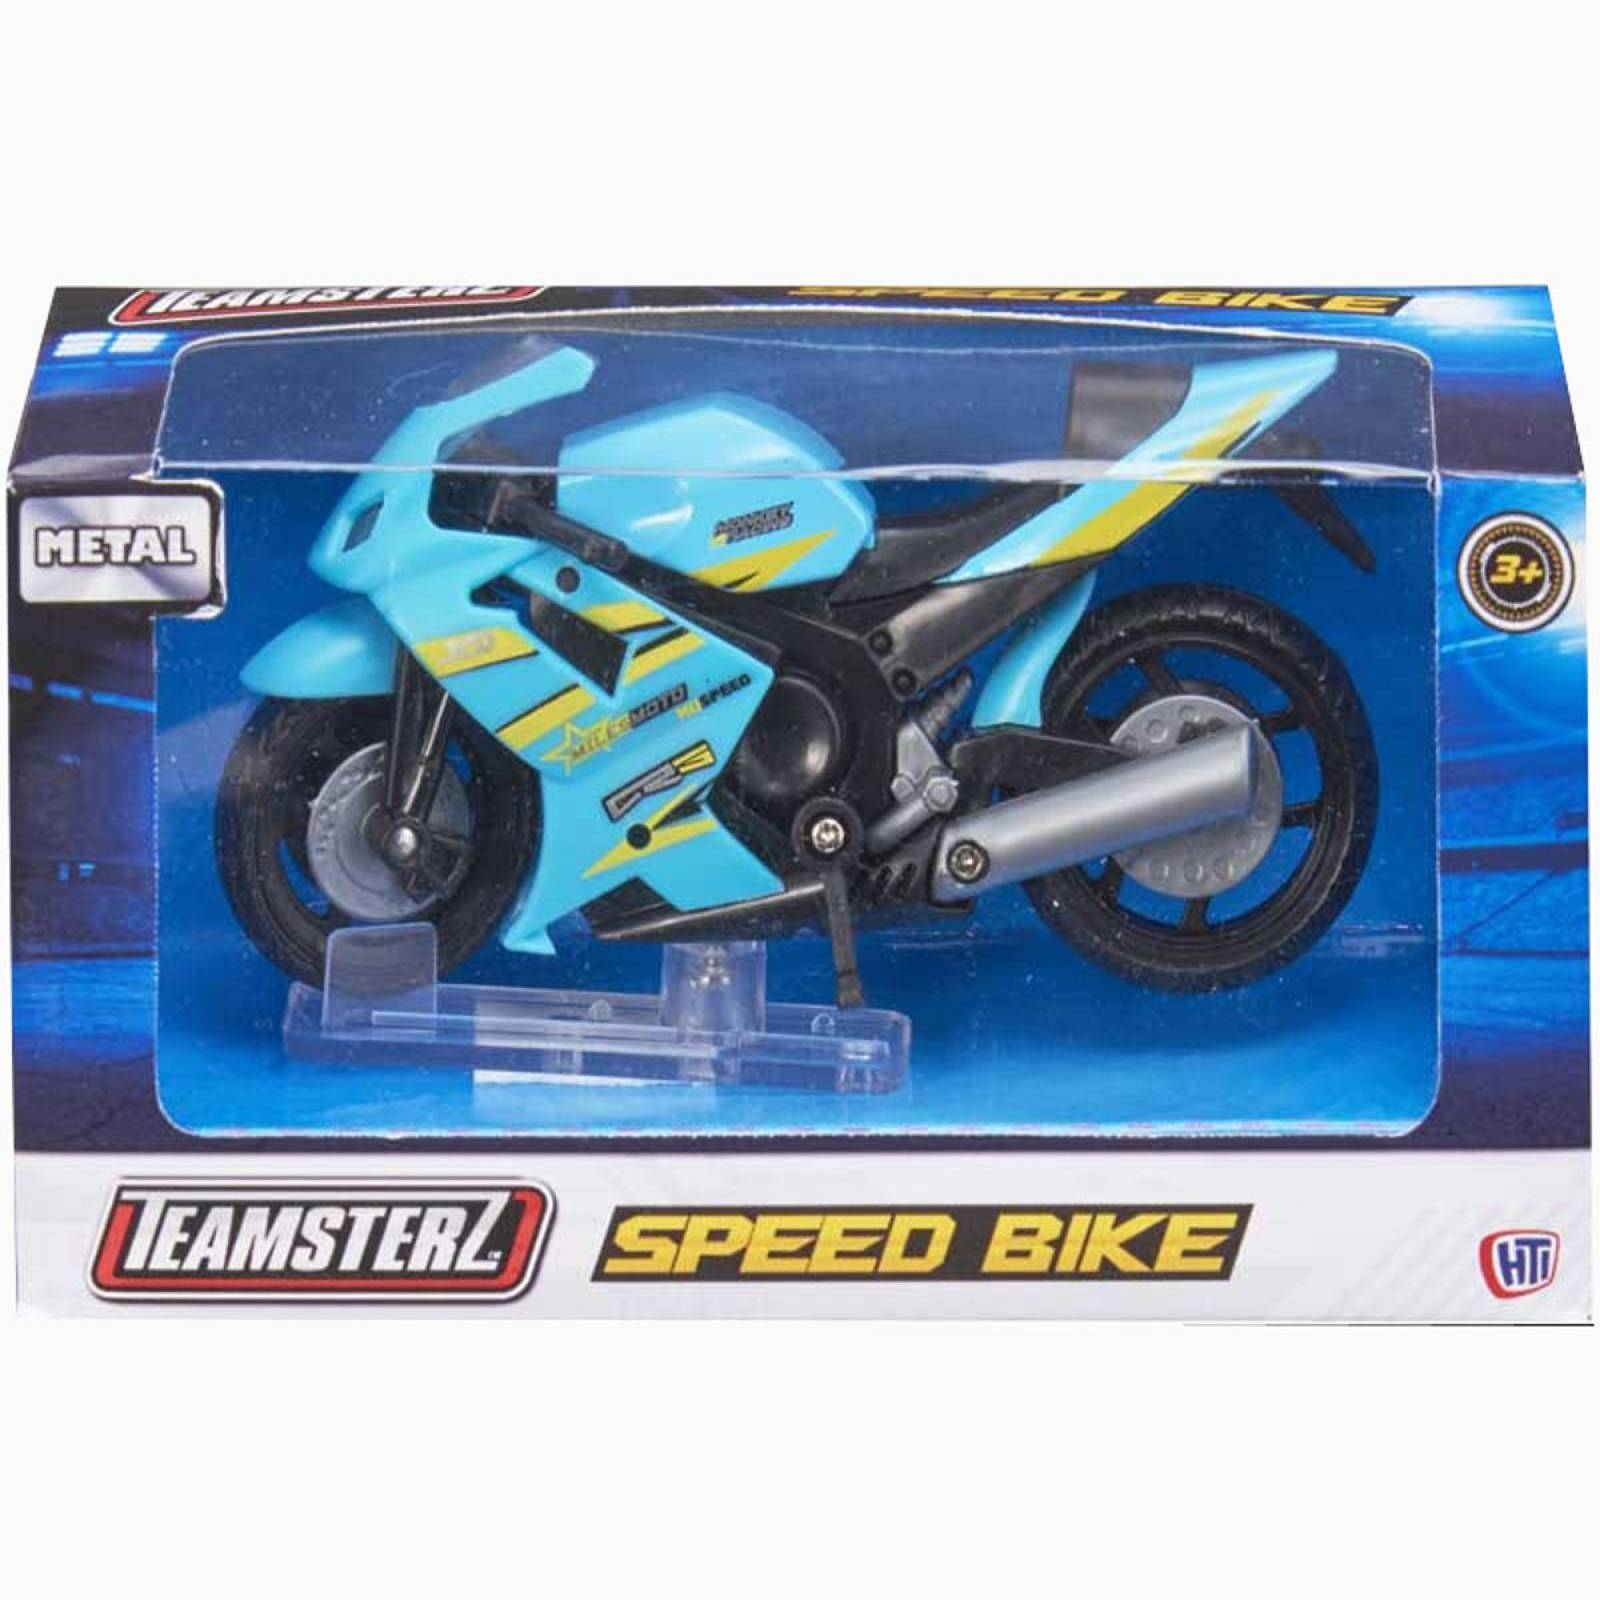 Teamsterz Speed Bike Die Cast & Plastic Toy Motorbike.  Teamster